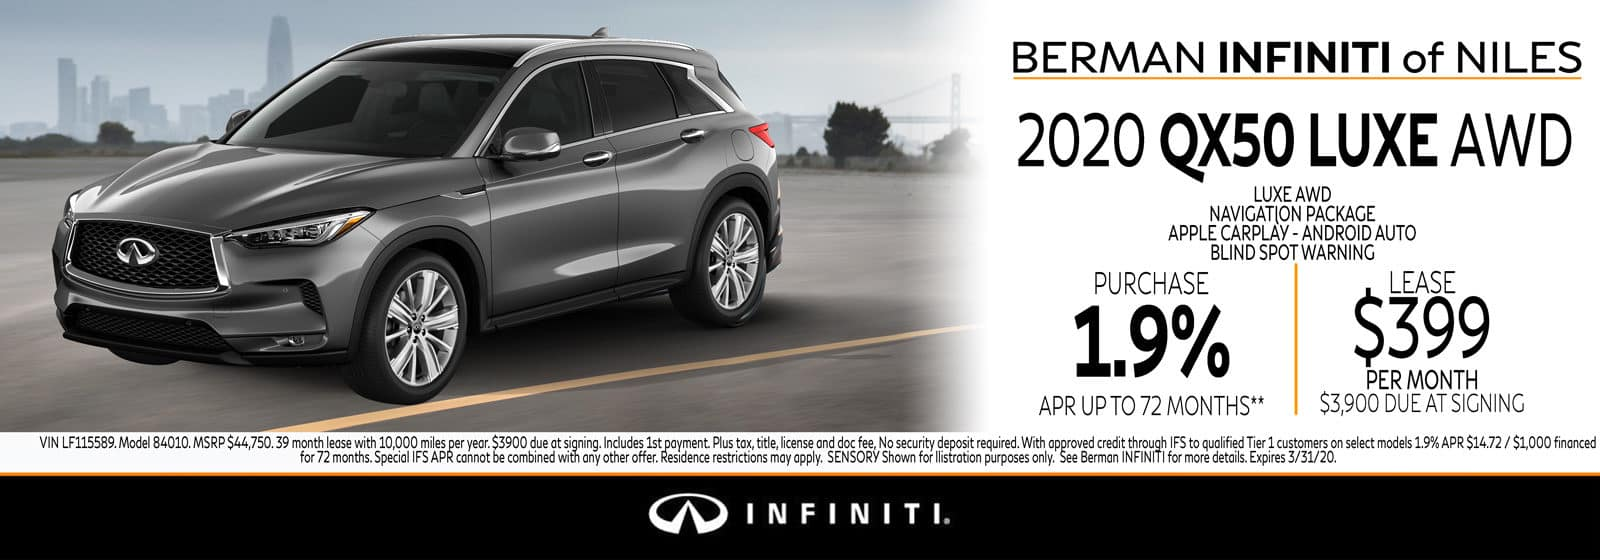 New 2020 INFINITI QX50 March Offer at Berman INFINITI of Niles!